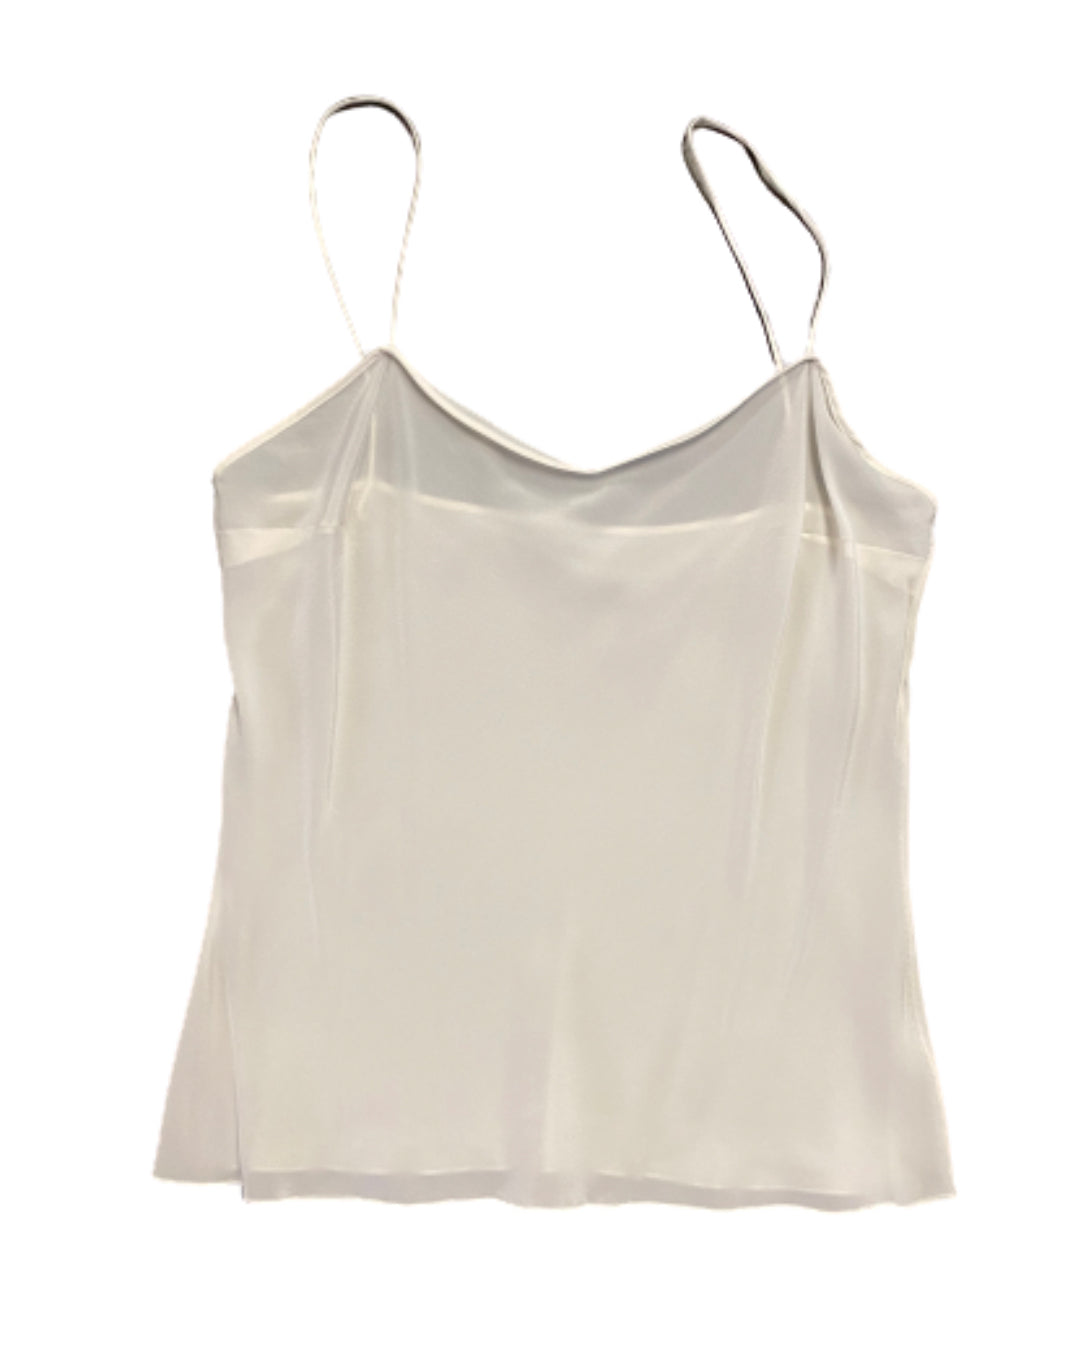 SILICON VALLEY: Monica's White Camisole